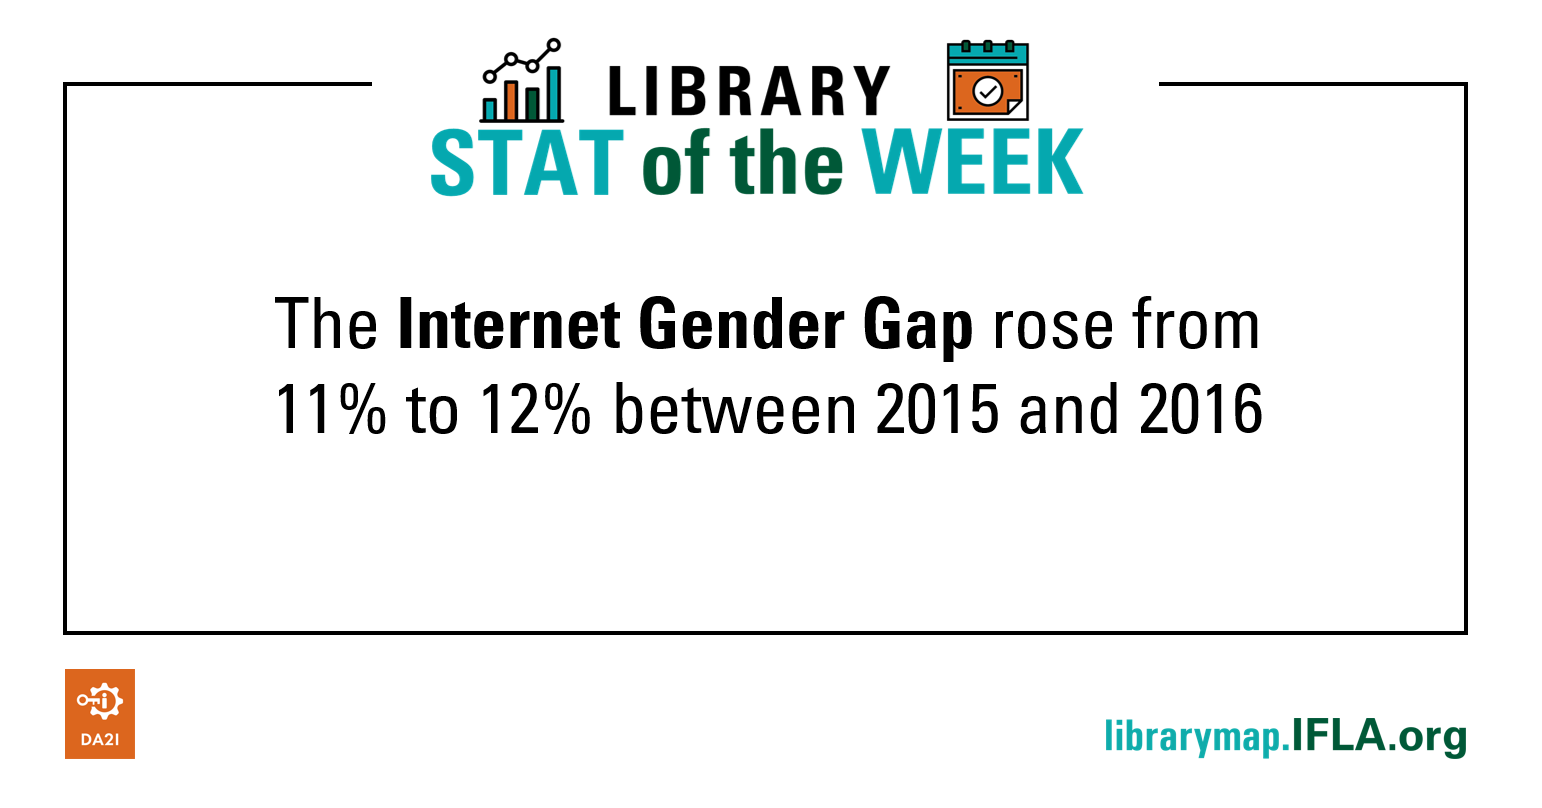 Library Stat of the Week #1: The Internet Gender Gap Rose from 11% to 12% between 2015 and 2016